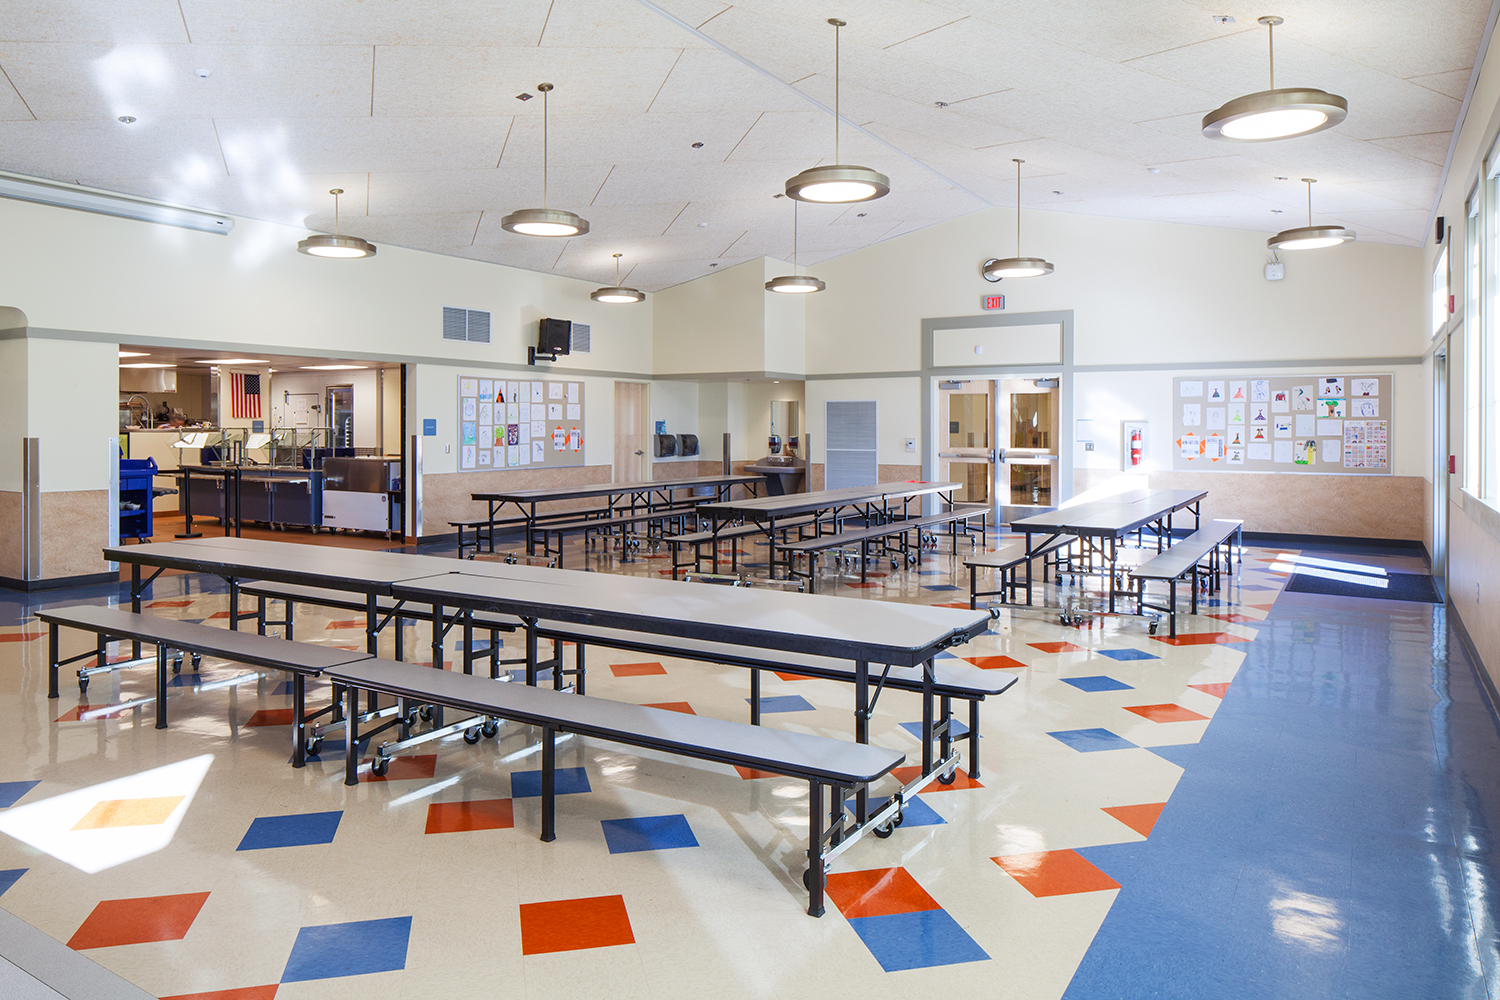 Broadway pendant luminaires as classroom lighting, hung over tables in a school cafeteria.